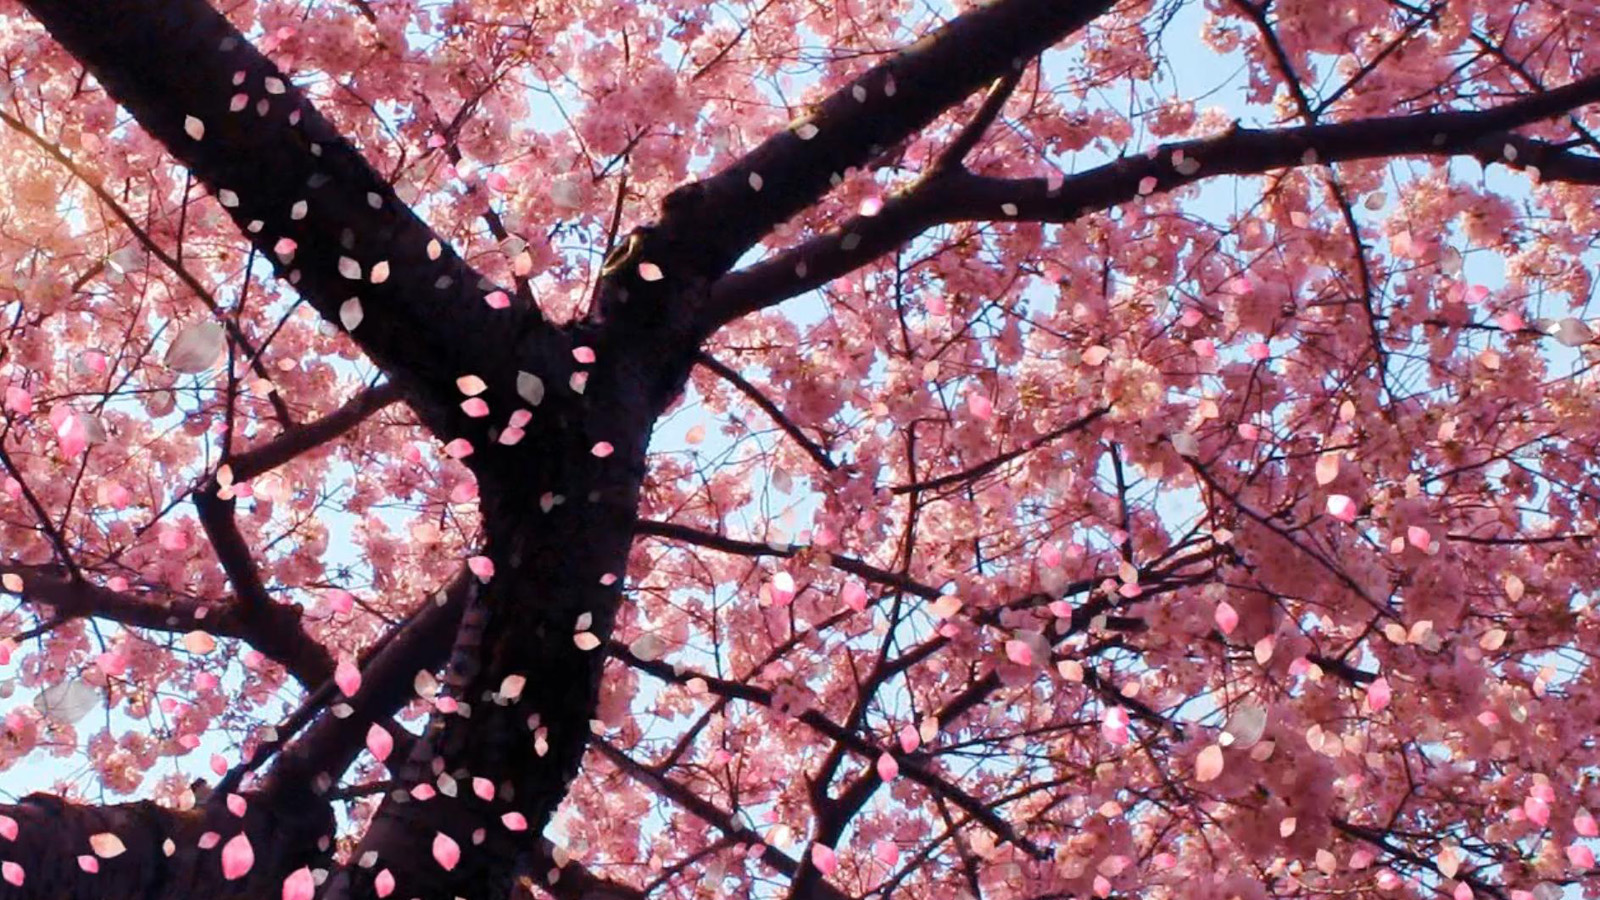 Cherry Blossom Animated Wallpaper - Flowers Falling Off Tree , HD Wallpaper & Backgrounds